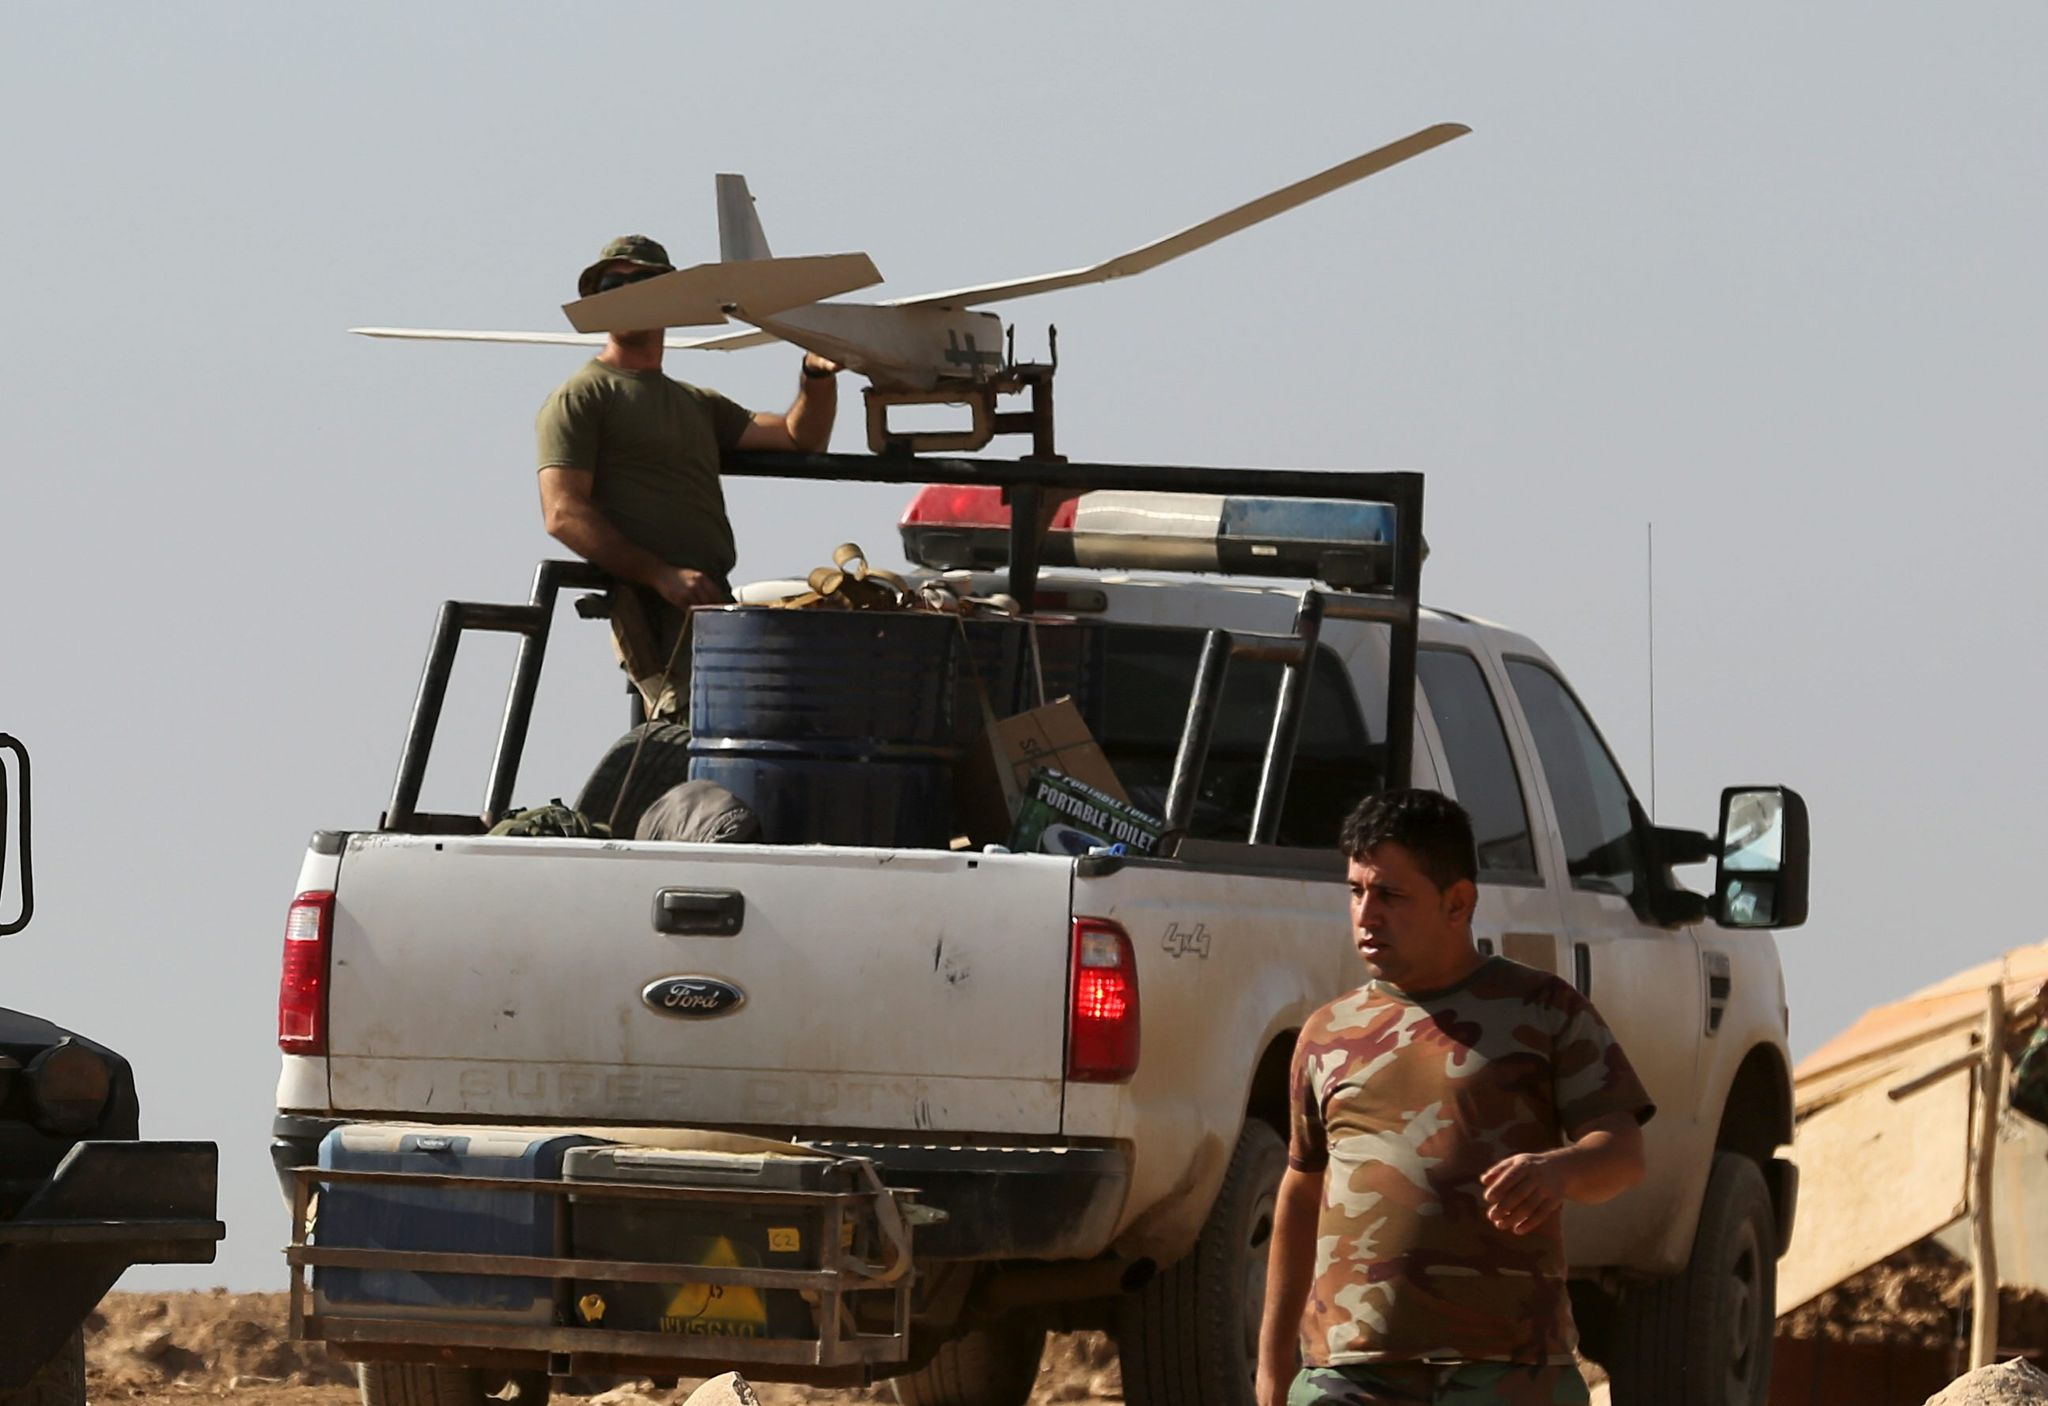 Iran deploys jamming device to counter drones